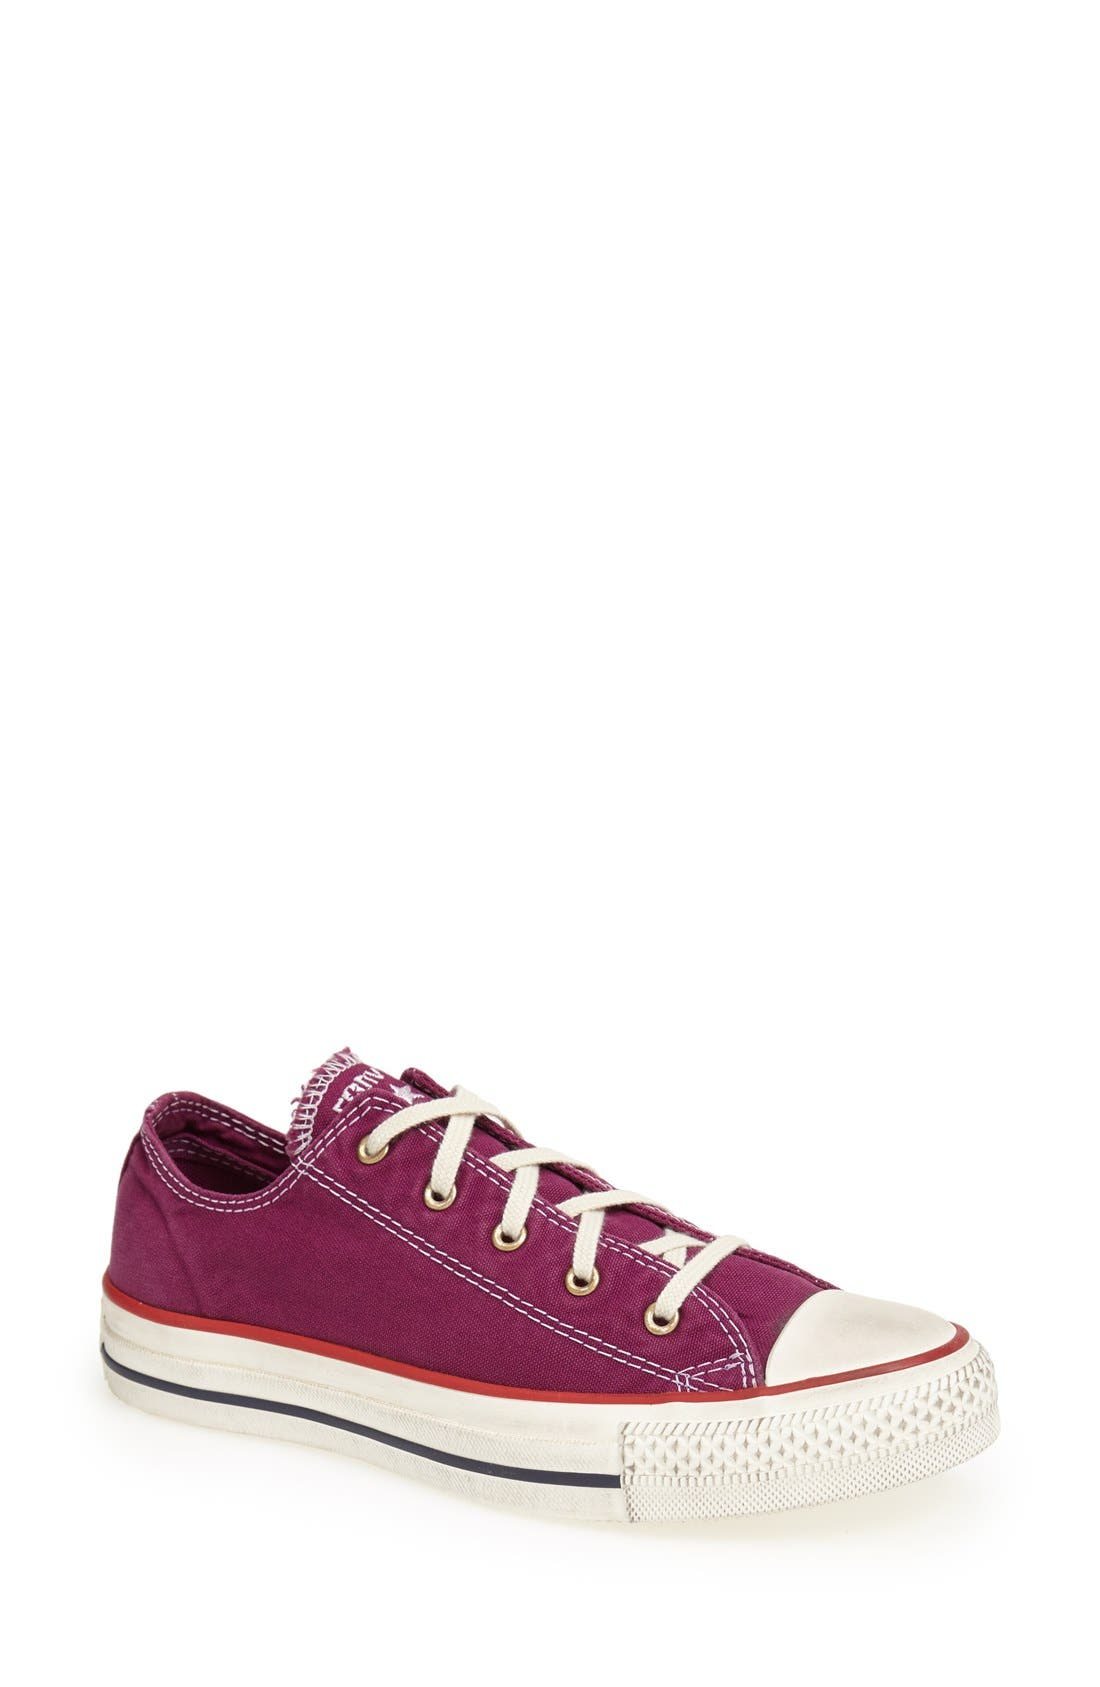 Main Image - Converse Chuck Taylor® All Star® Washed Low Sneaker (Women)